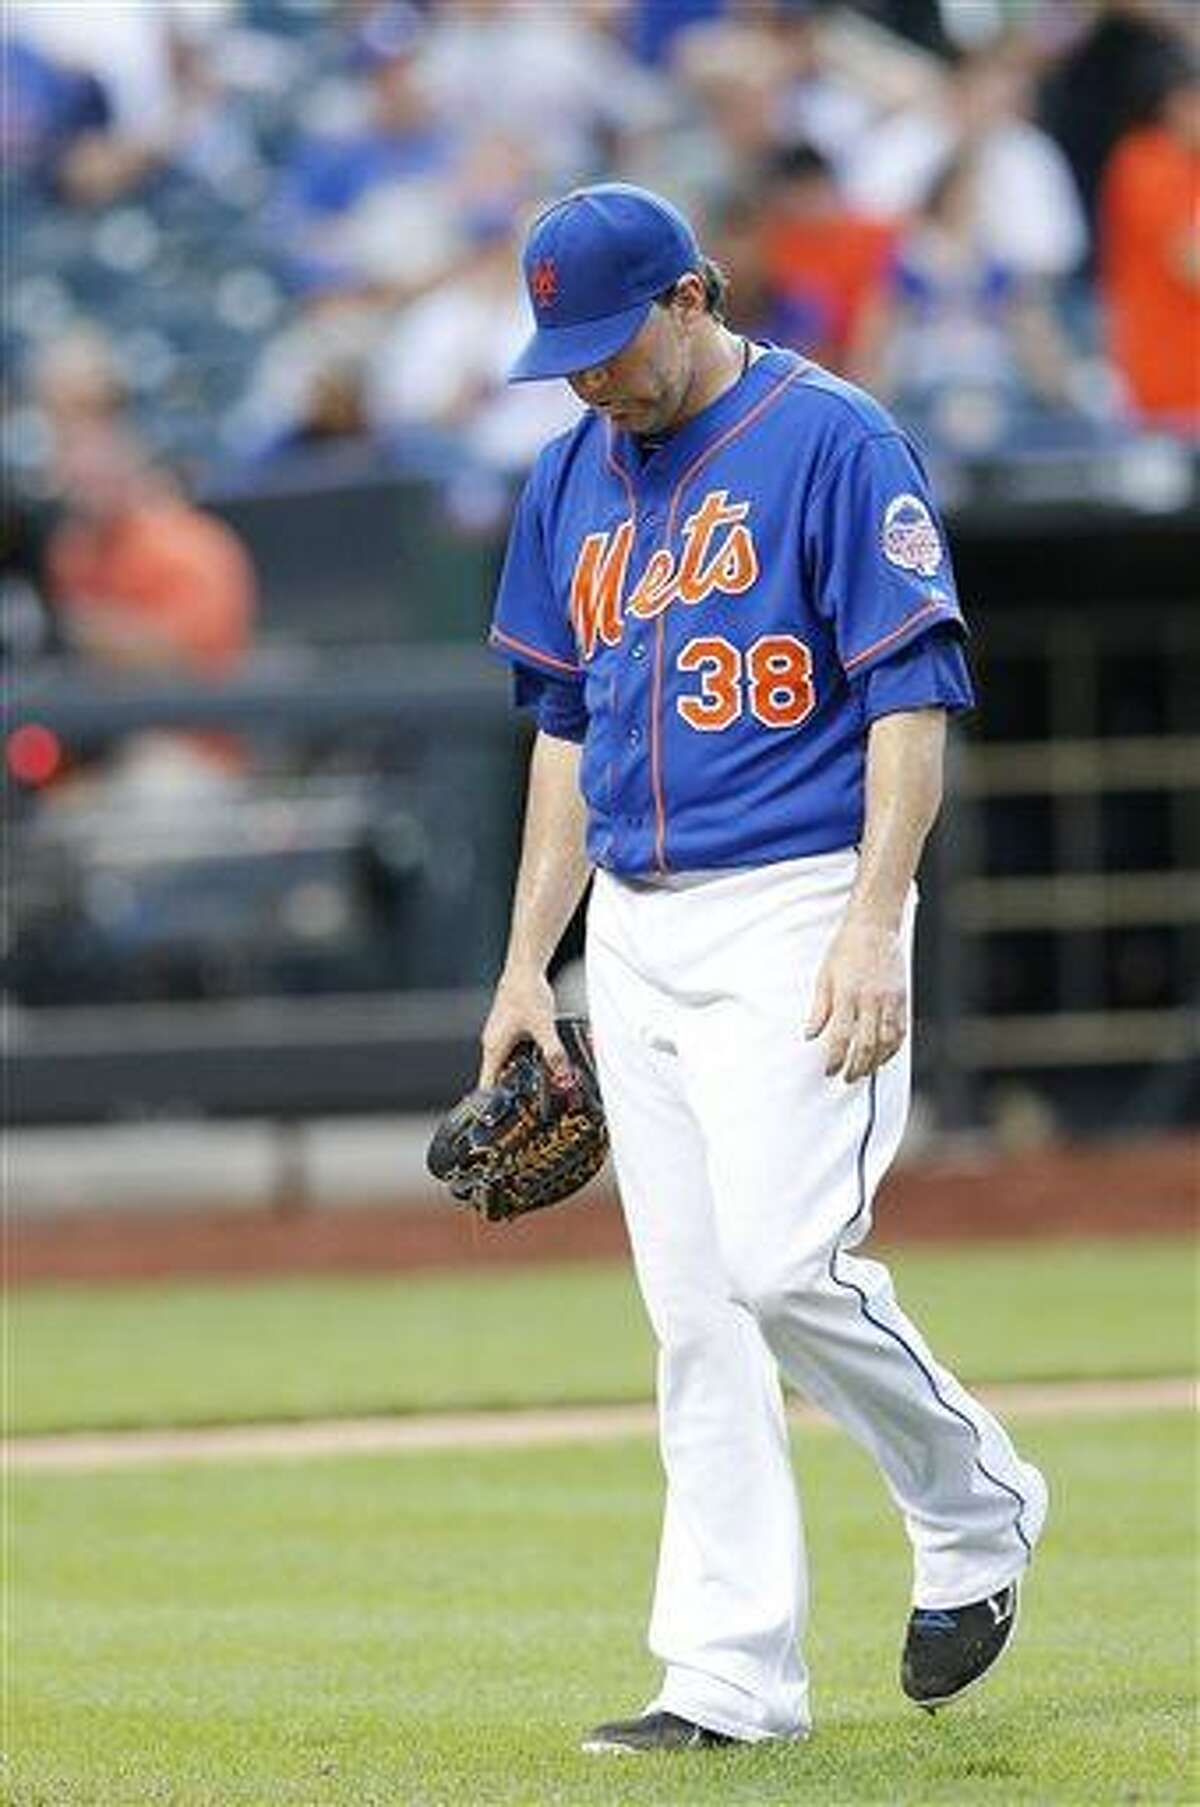 New York Mets pitcher Shaun Marcum (38) walks off the field after giving up a run in the 20th inning of 2-1 loss to the Miami Marlins during a baseball game at Citi Field in New York, Saturday, June 8, 2013. (AP Photo/Paul J. Bereswill)